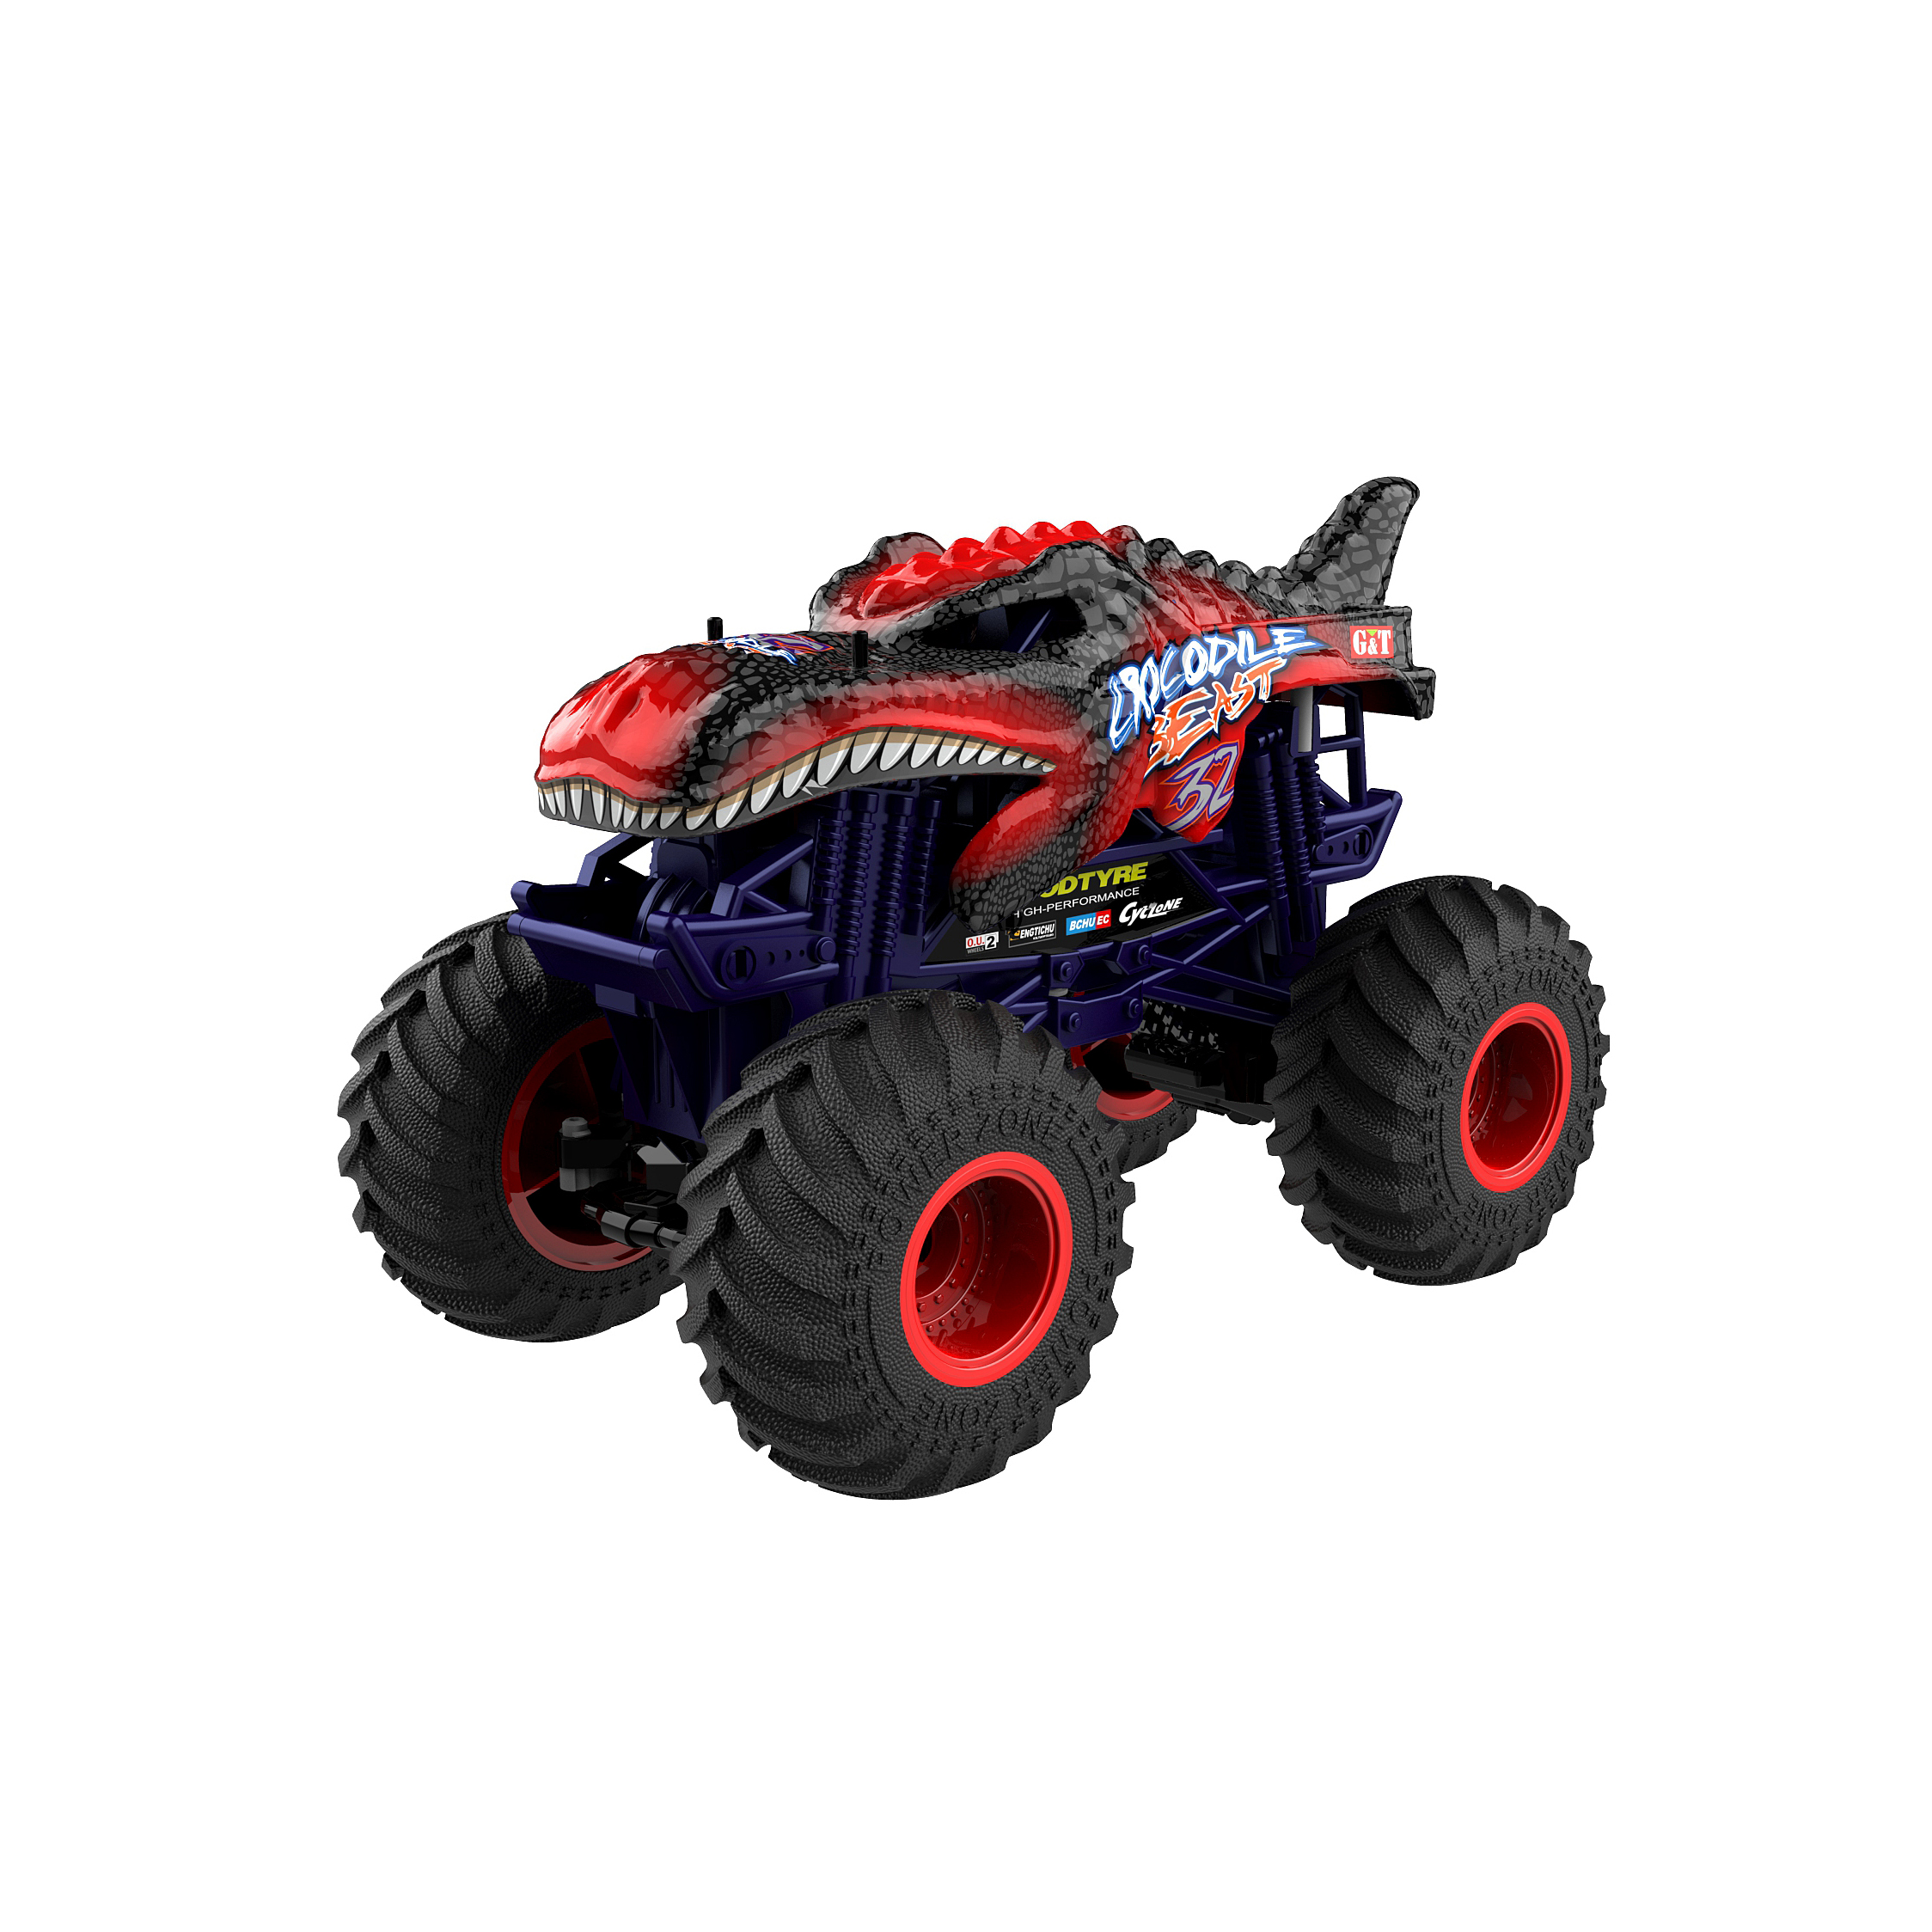 New Arrival 1:10 Scale High Speed 15km/h Radio Control RC Monster Car Truck 4WD Remote Control RC Drift Vehicle Monster Car <strong>110</strong>